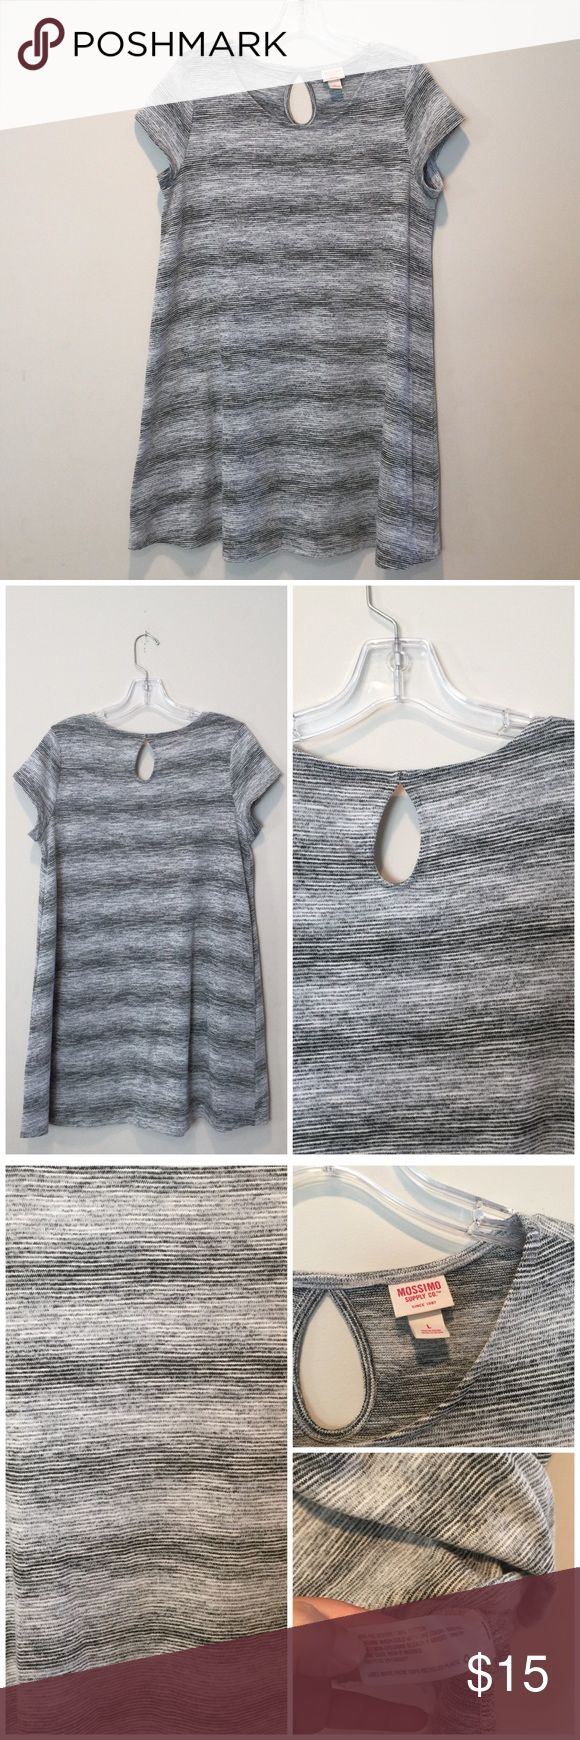 Black/gray marled dress Worn 1x. Cute transitional dress. Wear it in the Spring with flats, booties & in the Fall/Winter with leggings/tights & boots. Flowy fit. Fits a size 12 properly.   B= 22 inches pit to pit | L= 33 inches    ❌No trades/swaps ❌No PayPal 🐶Pet friendly home 📫I ship M, W, & F 🚭Smoke free home  ❗️24 hour reservations  🛍Bundle 2+ items for a discount Mossimo Supply Co. Dresses Mini